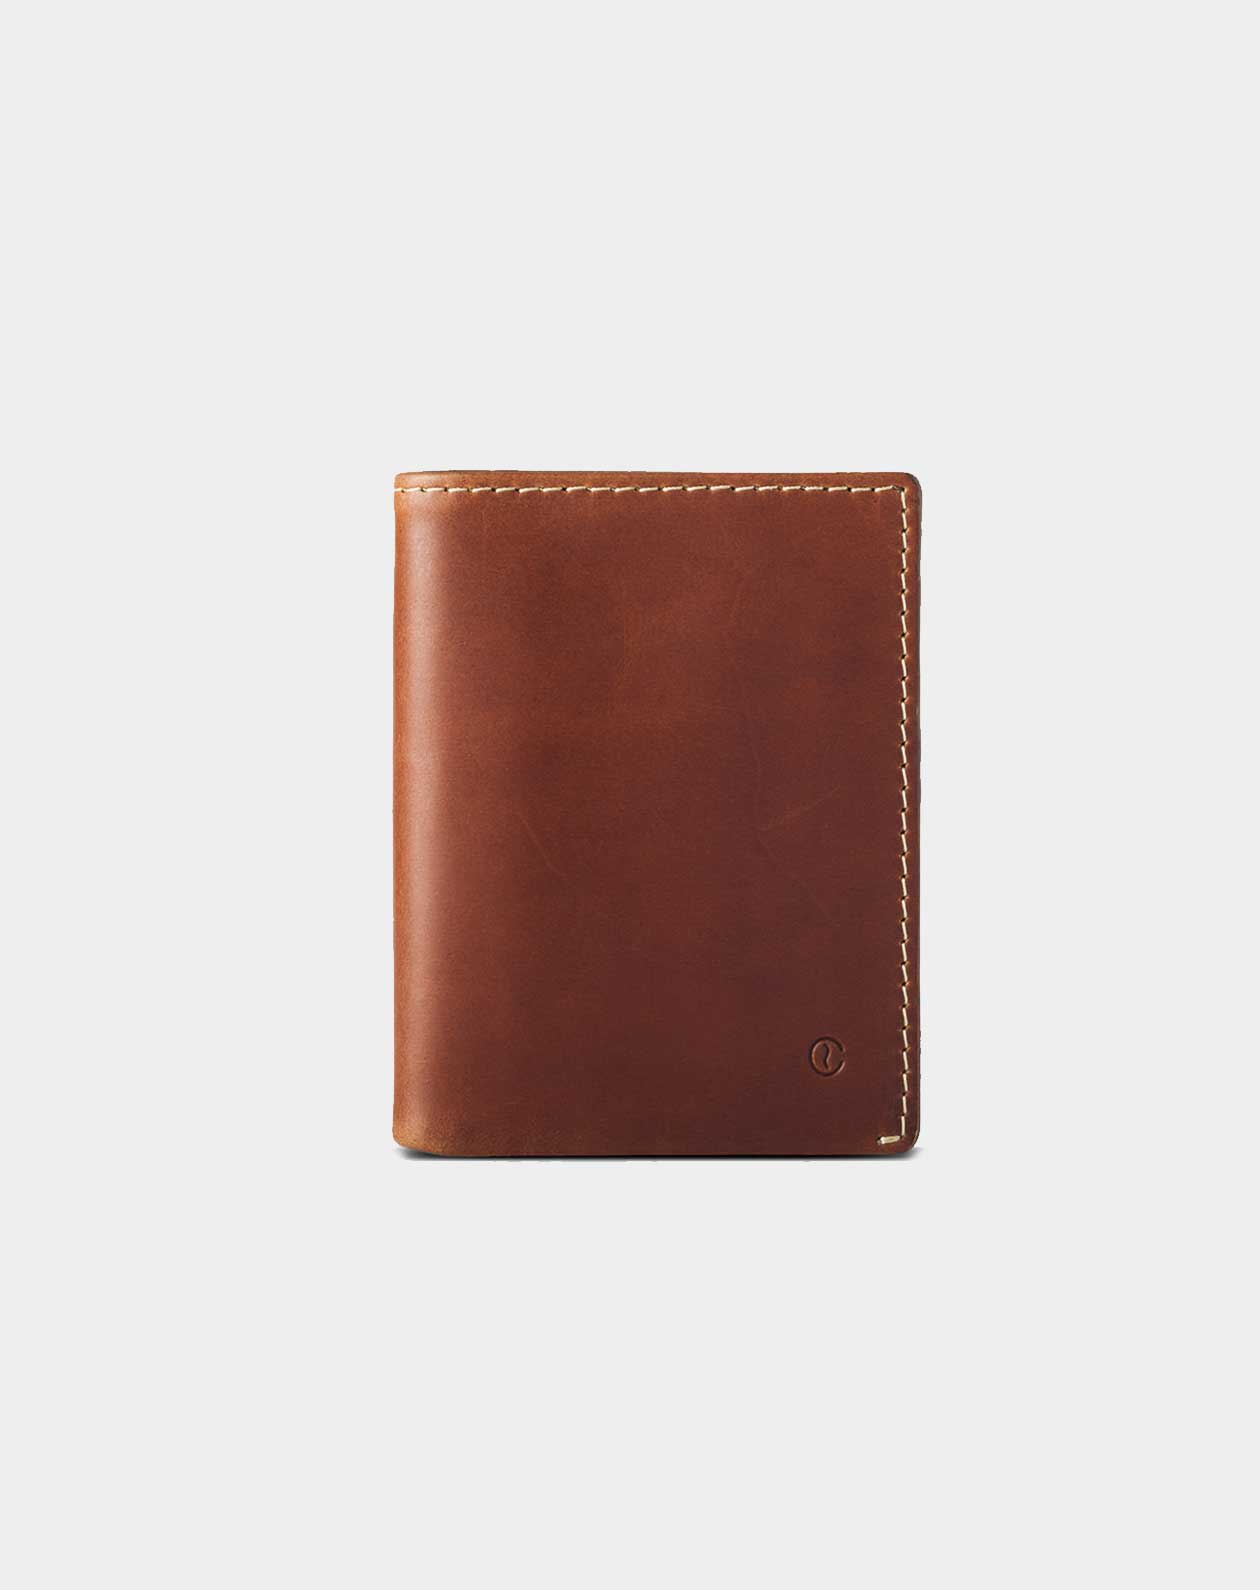 leather wallet brown slim